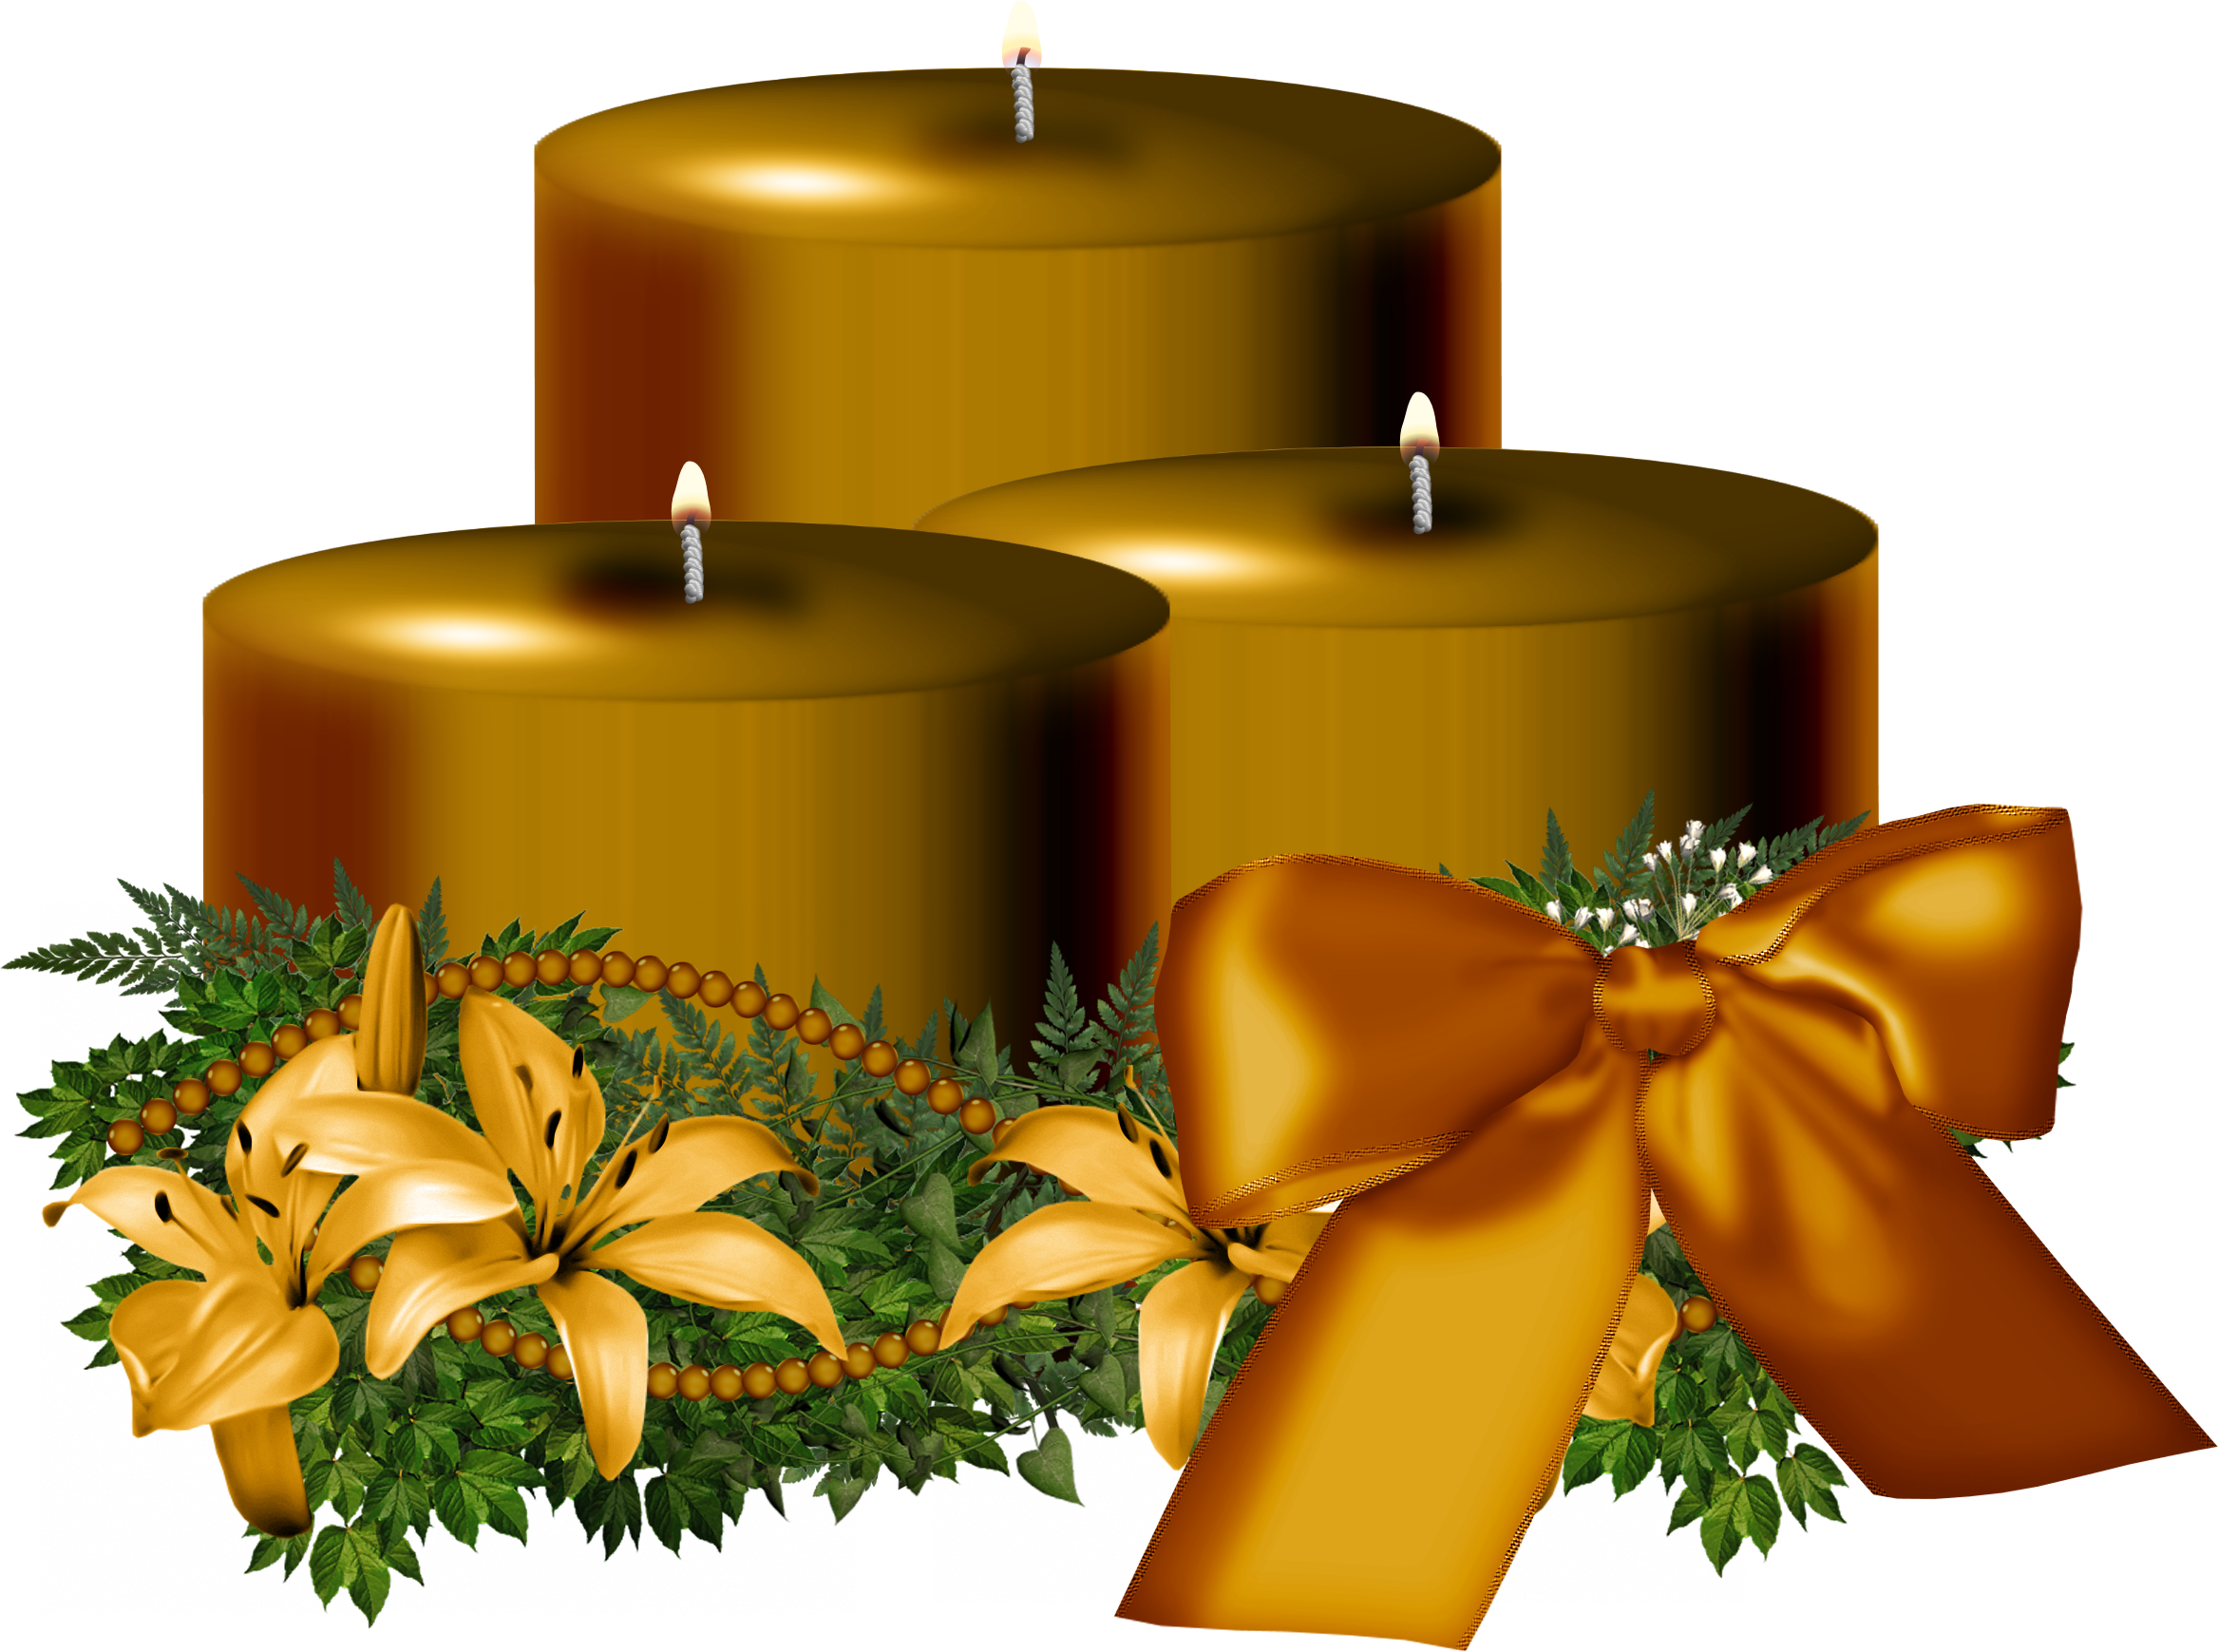 Tree Golden Christmas Candle Decorated PNG Image